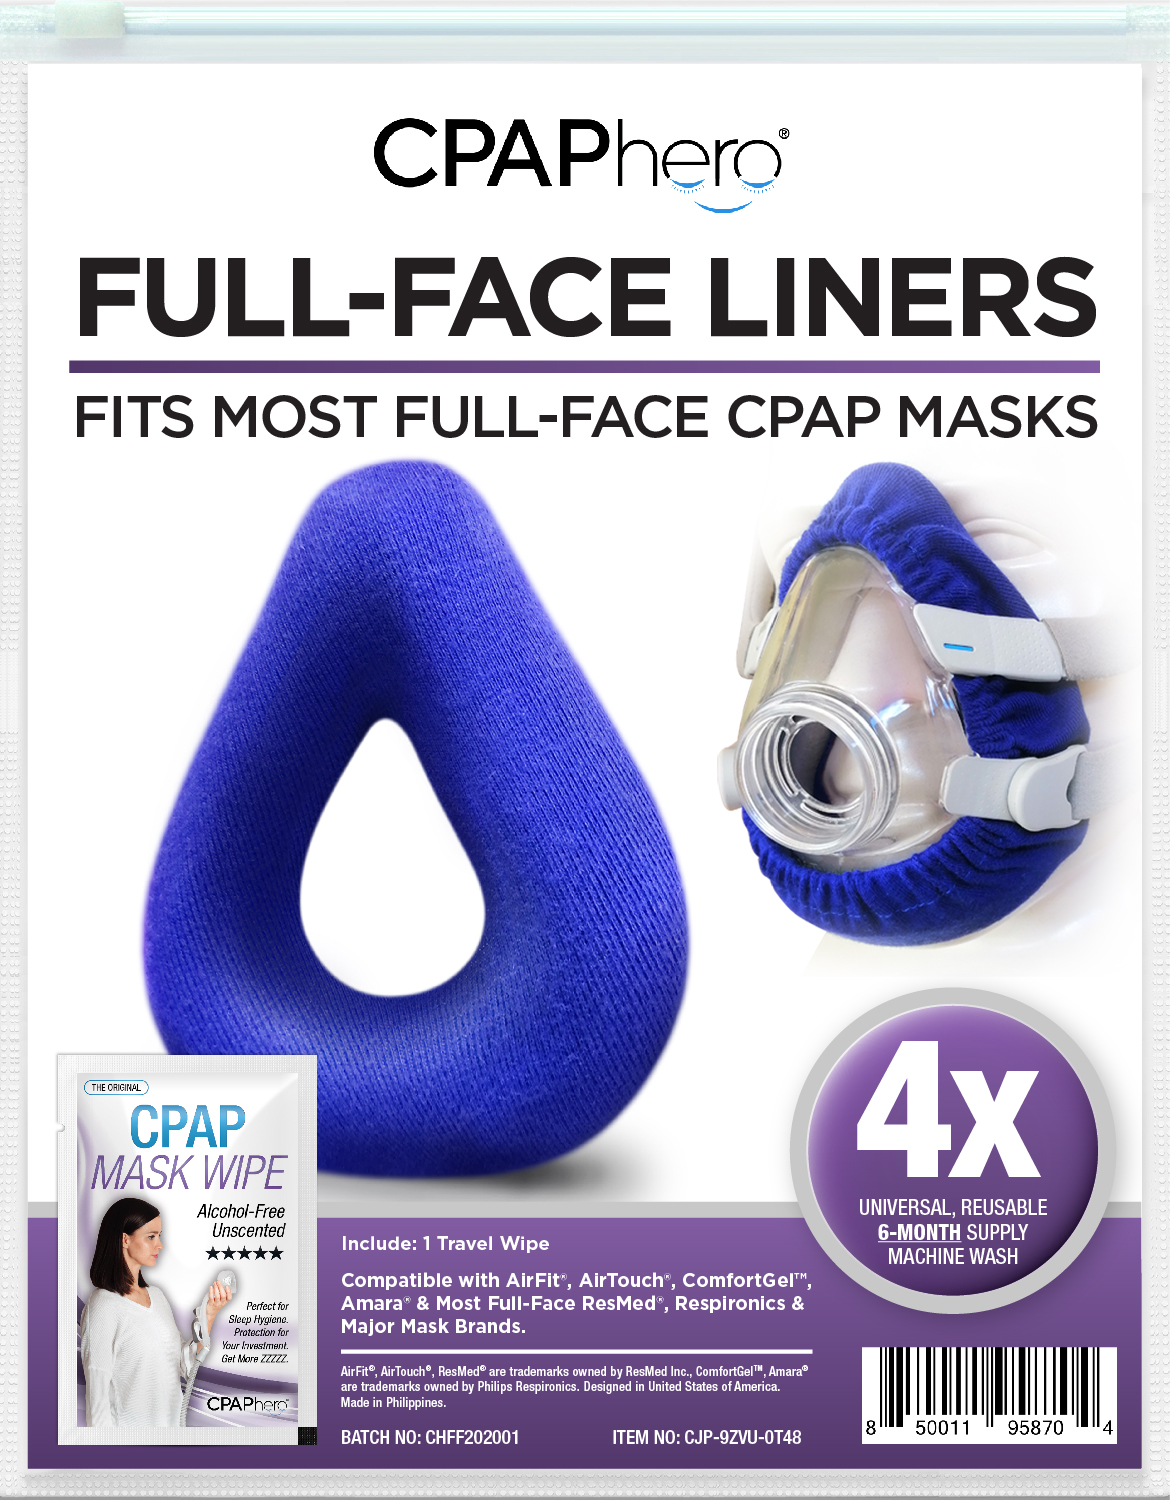 cpap mask liner 4 pack plus travel wipe by cpaphero for full face masks airfit etc walmart com